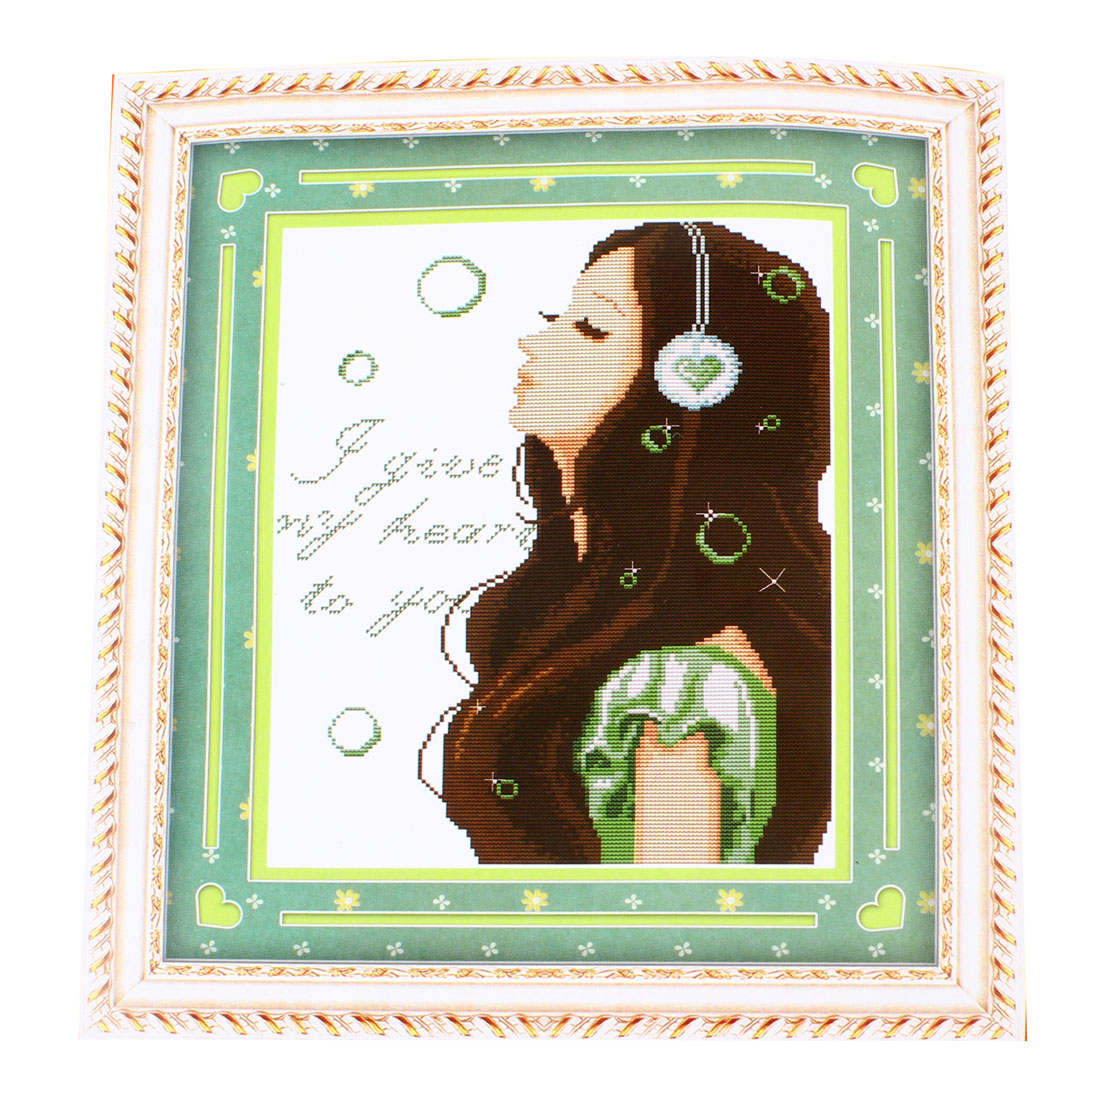 Girl Letter Pattern Stamped Handmade Cross Stitch Counted Gift for Lady